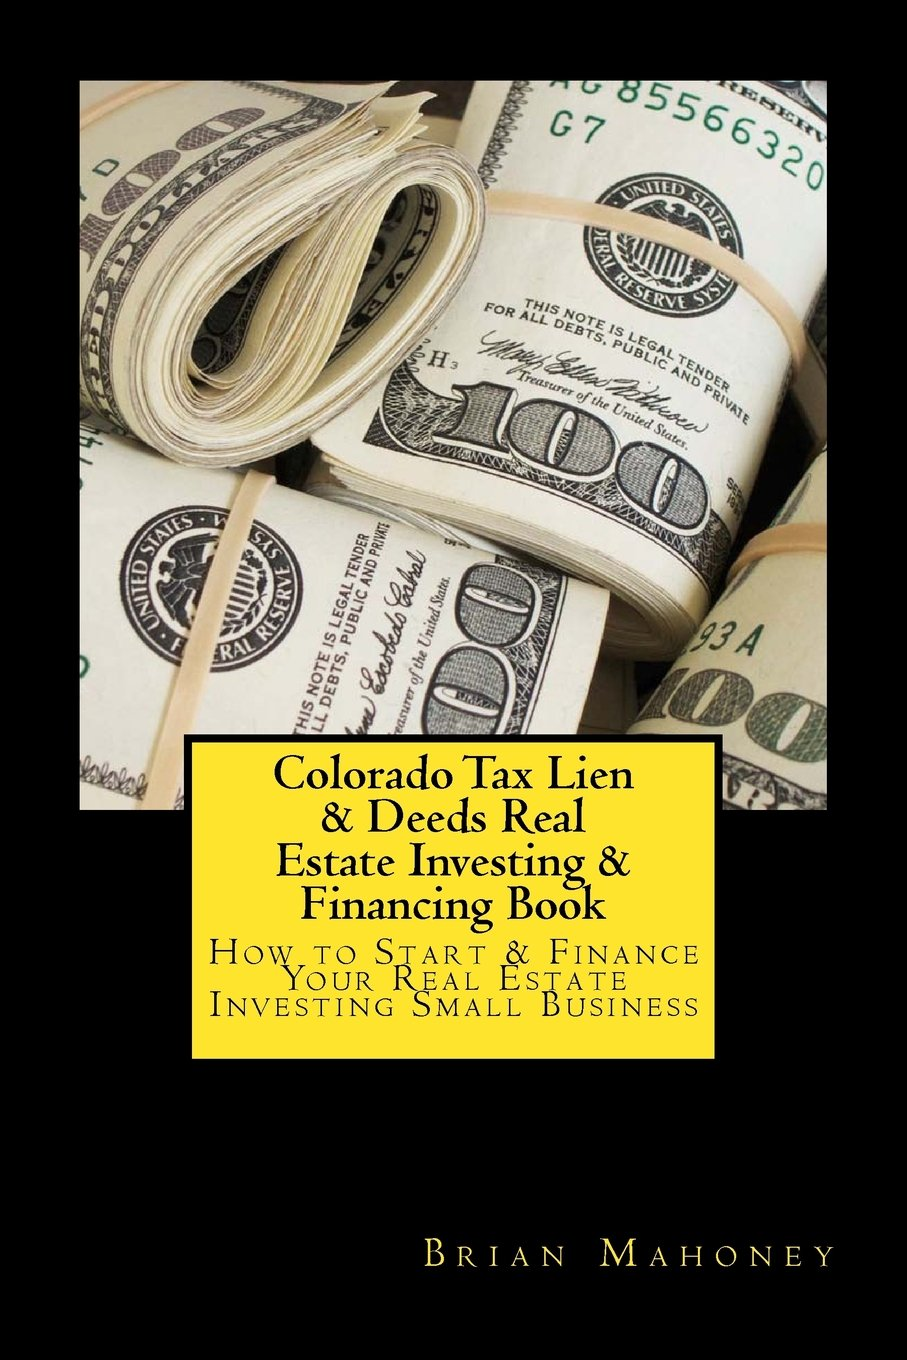 Colorado Tax Lien & Deeds Real Estate Investing & Financing Book: How to Start & Finance Your Real E